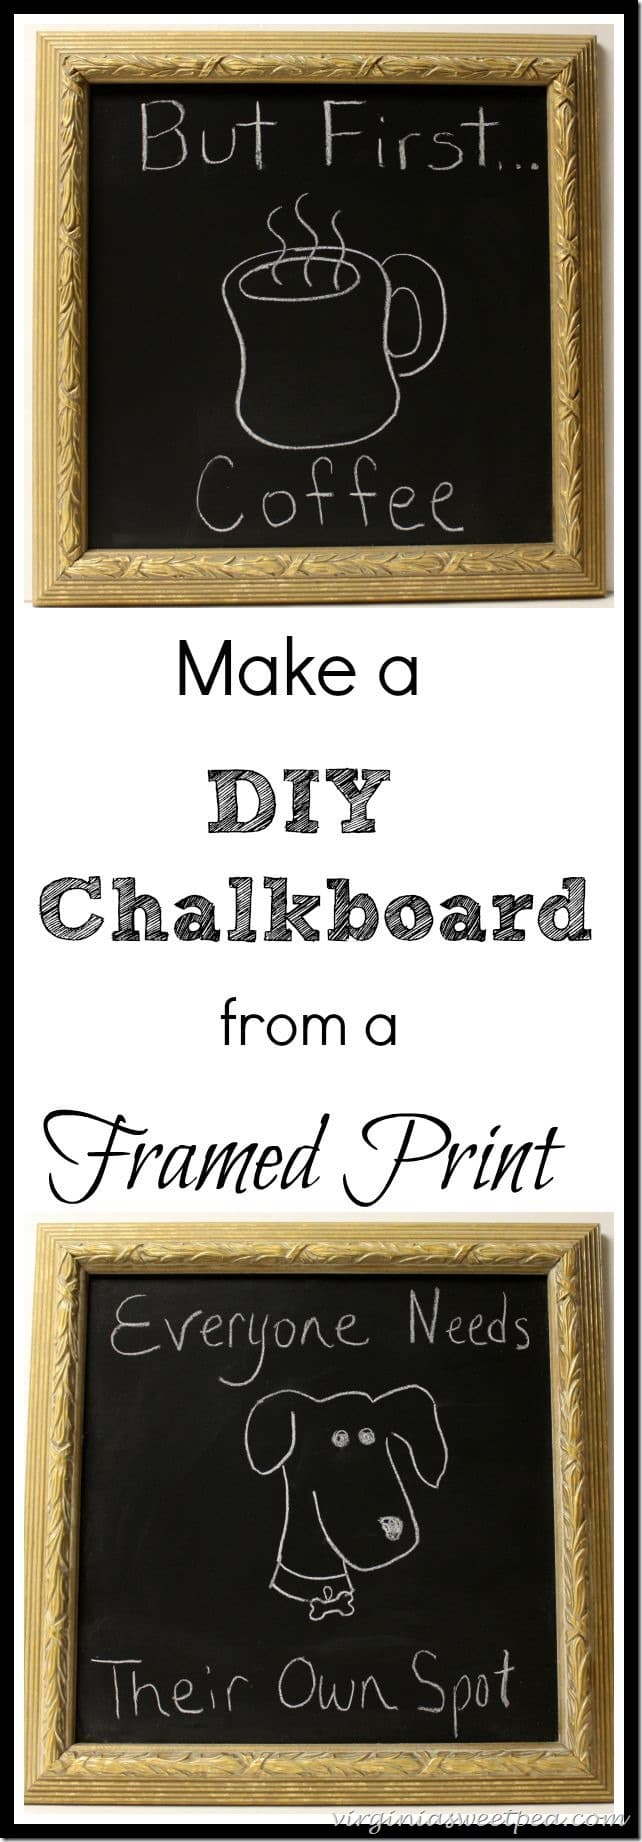 How-to-make-a-diy-chalkboard-from-a-framed-print-virginiasweetpea